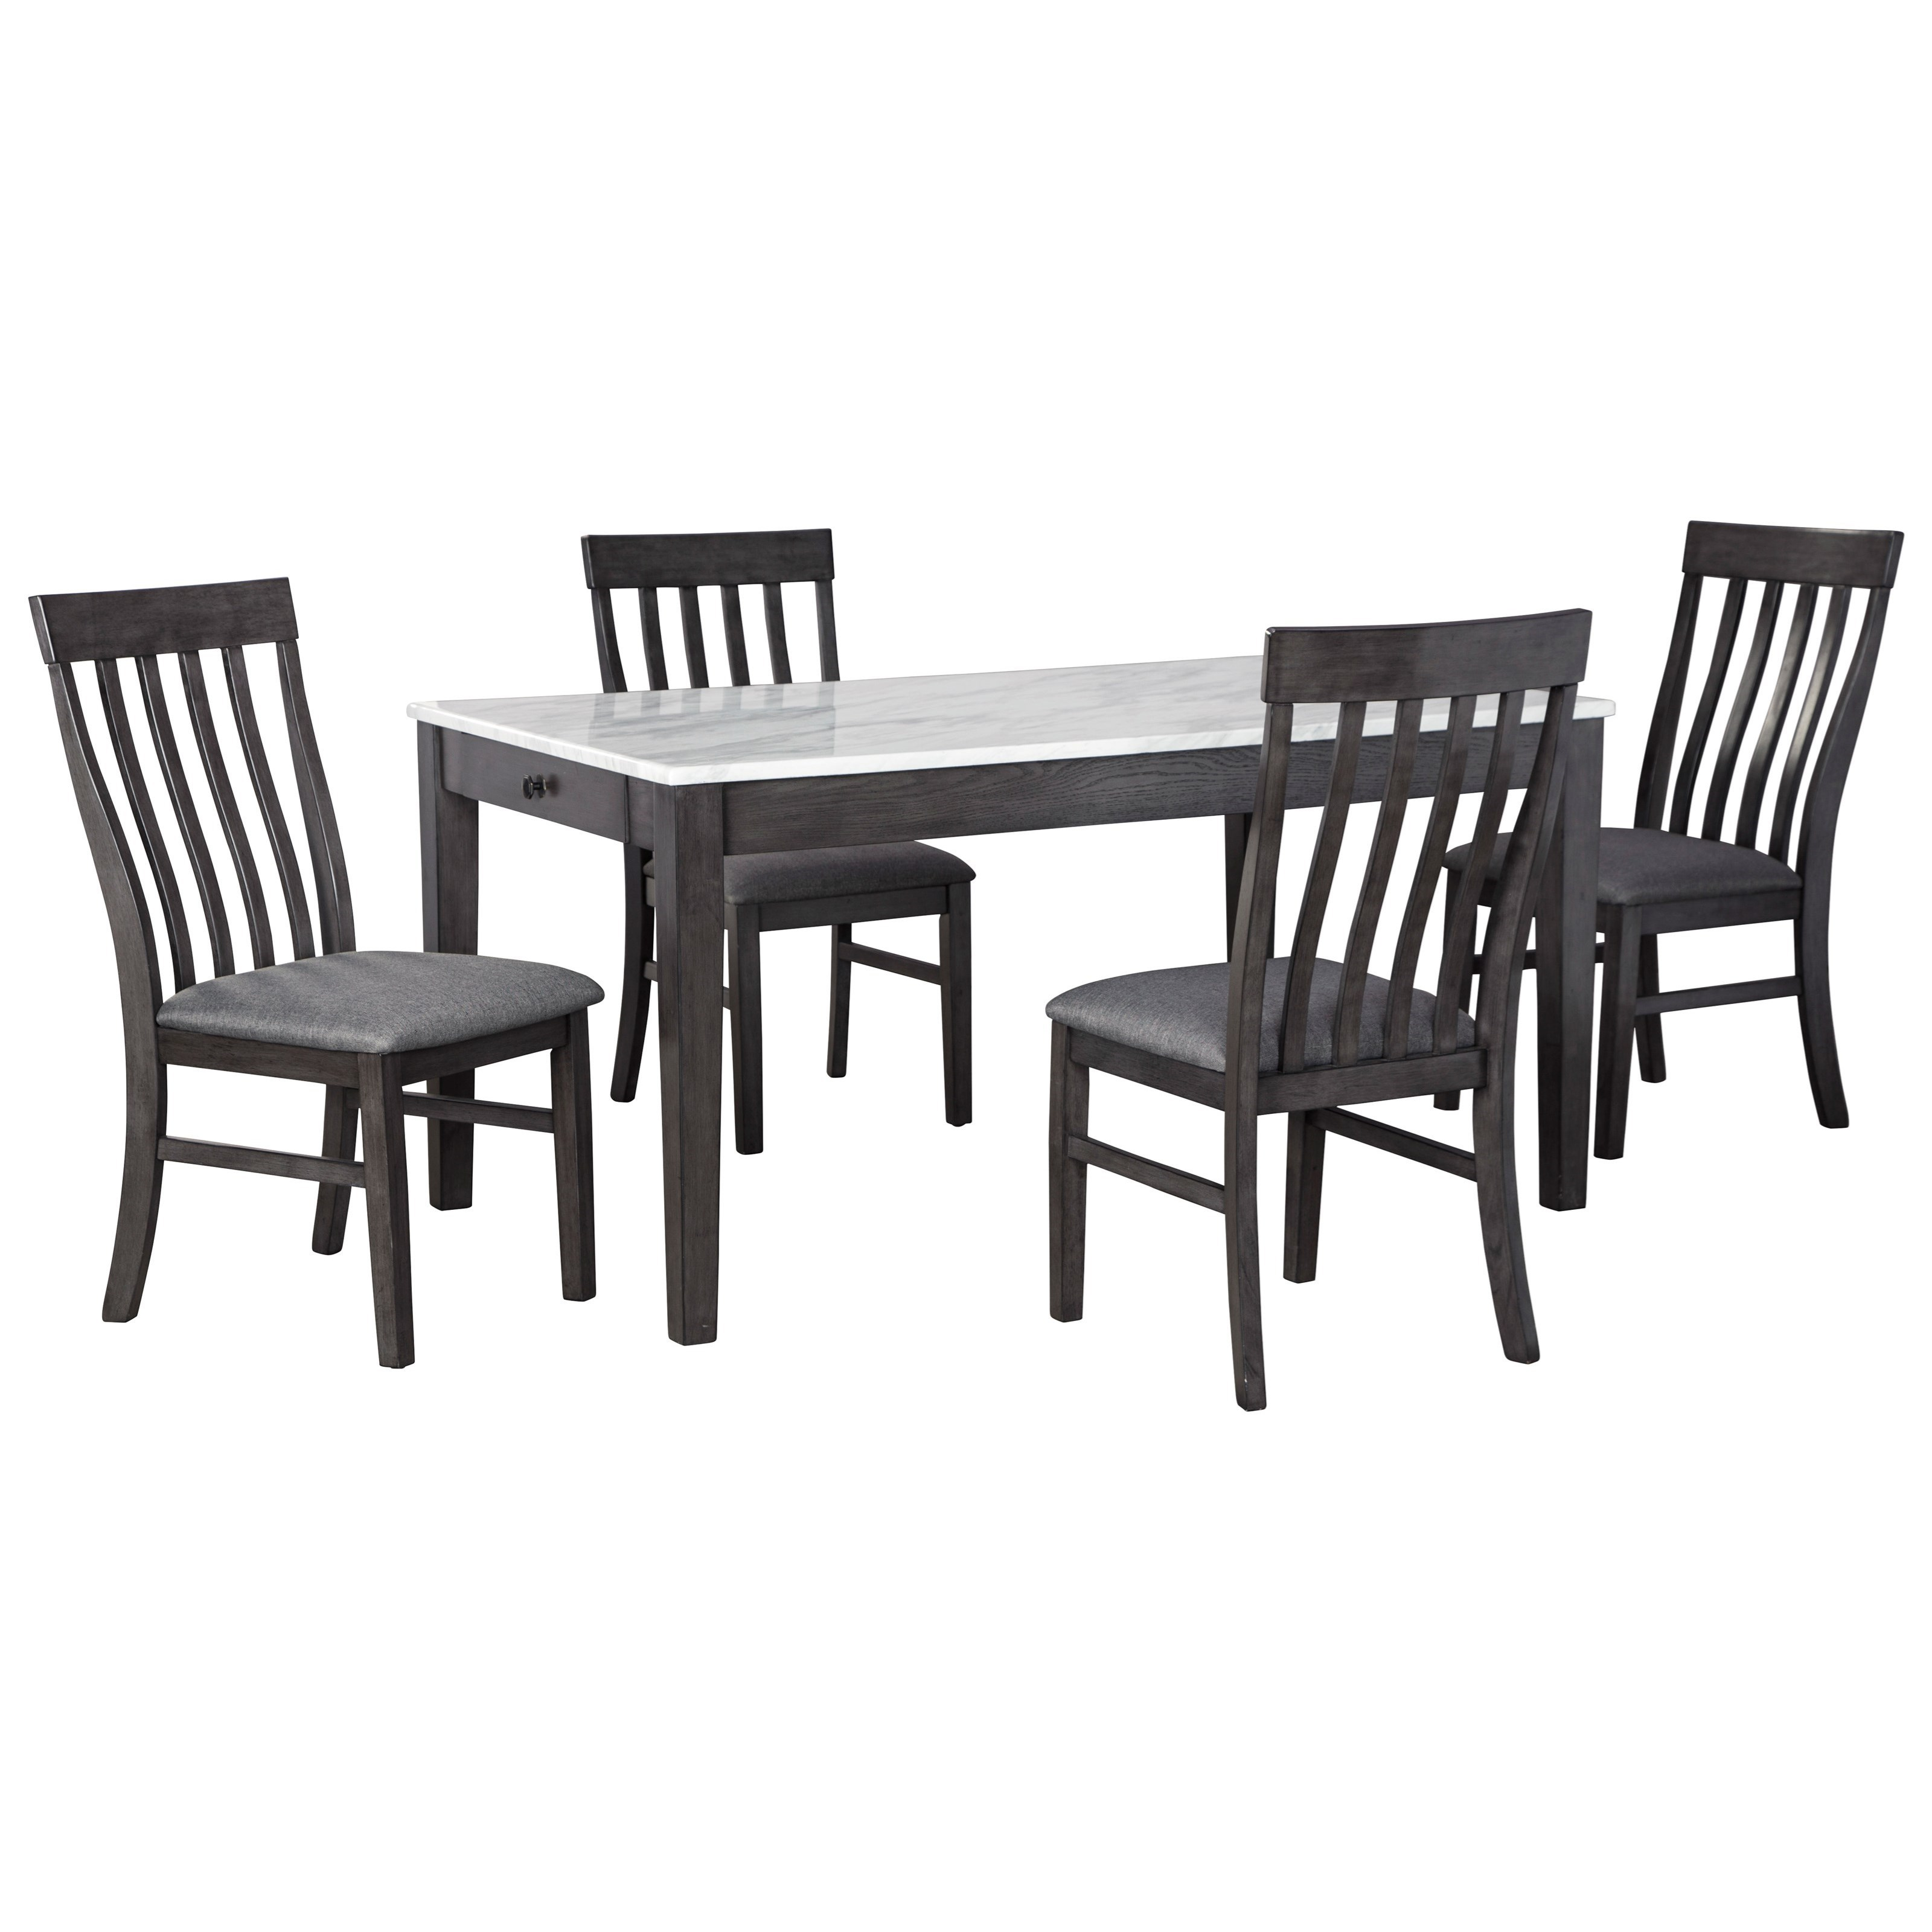 Luvoni 5-Piece Dining Set by Benchcraft at Value City Furniture